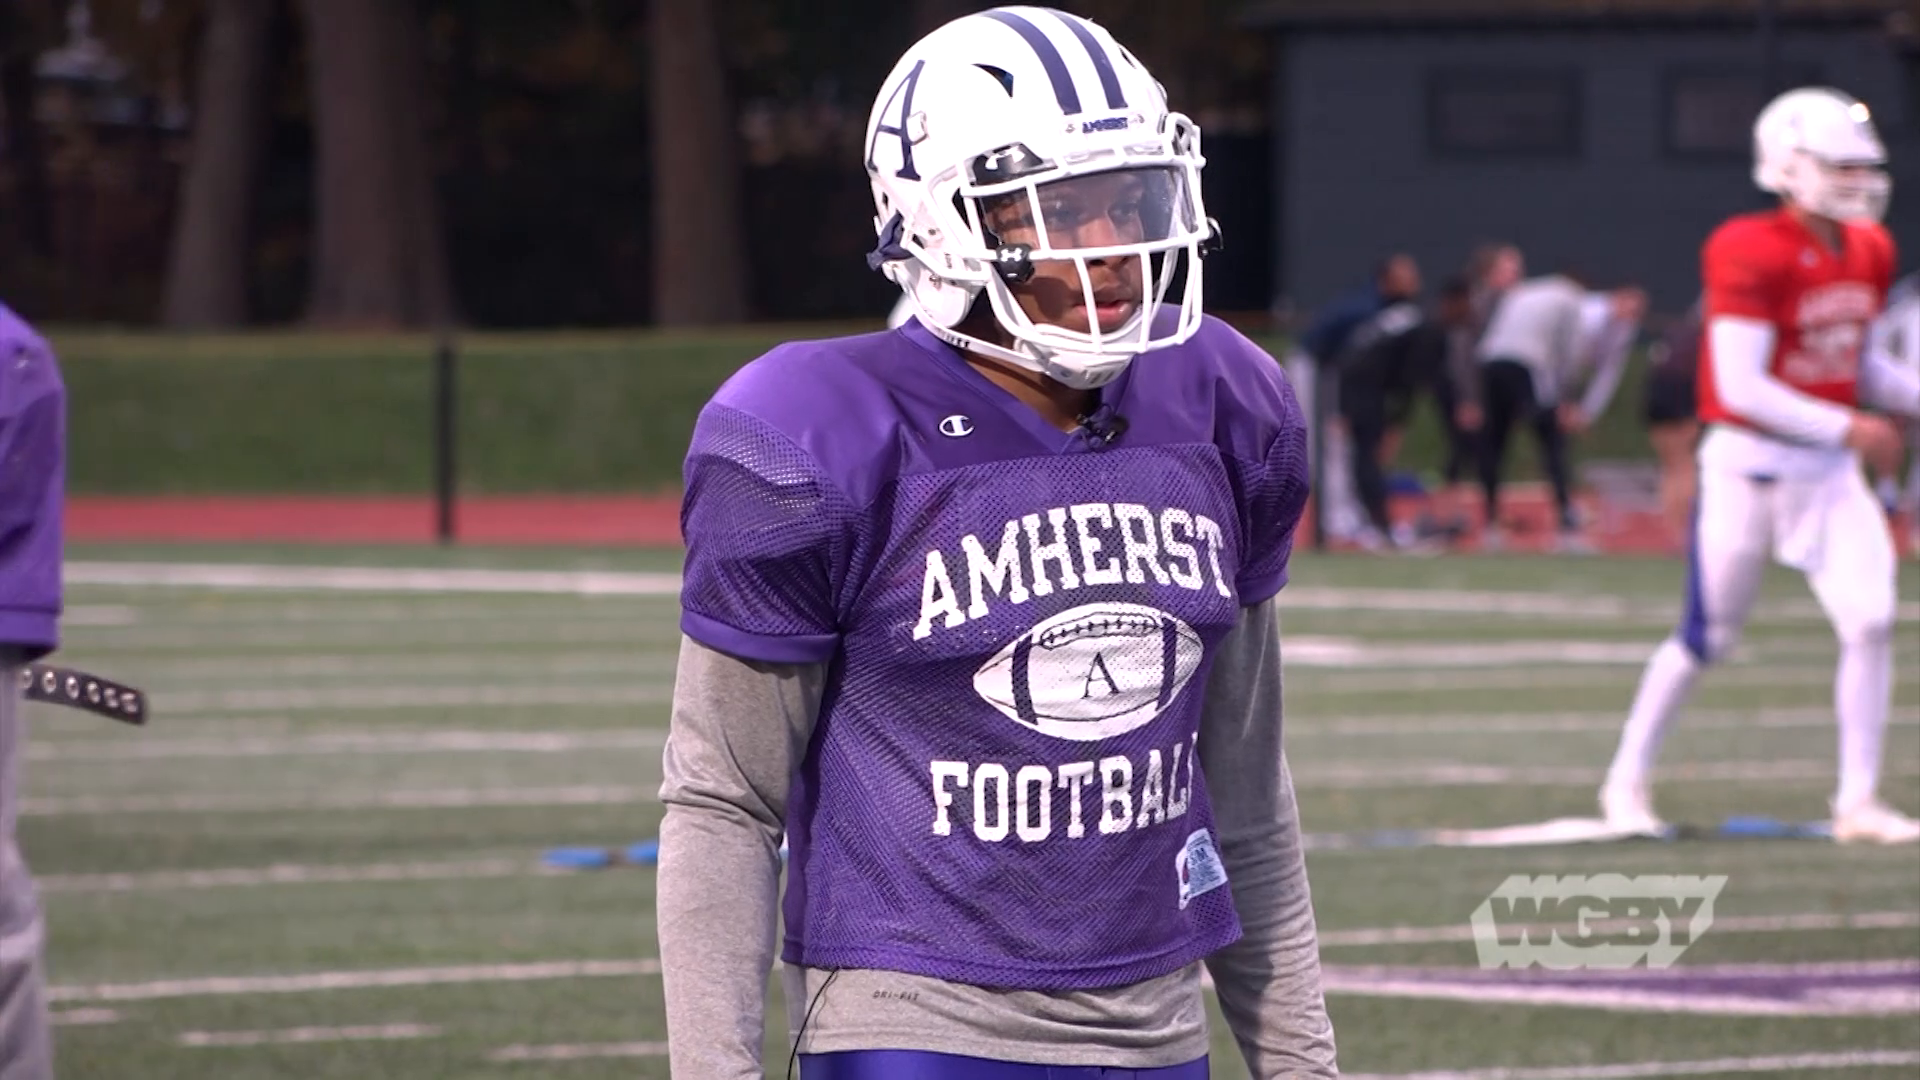 Amherst College Football Captain Avery Saffold, one of only seven openly gay or bisexual college football players, shares his journey to acceptance.